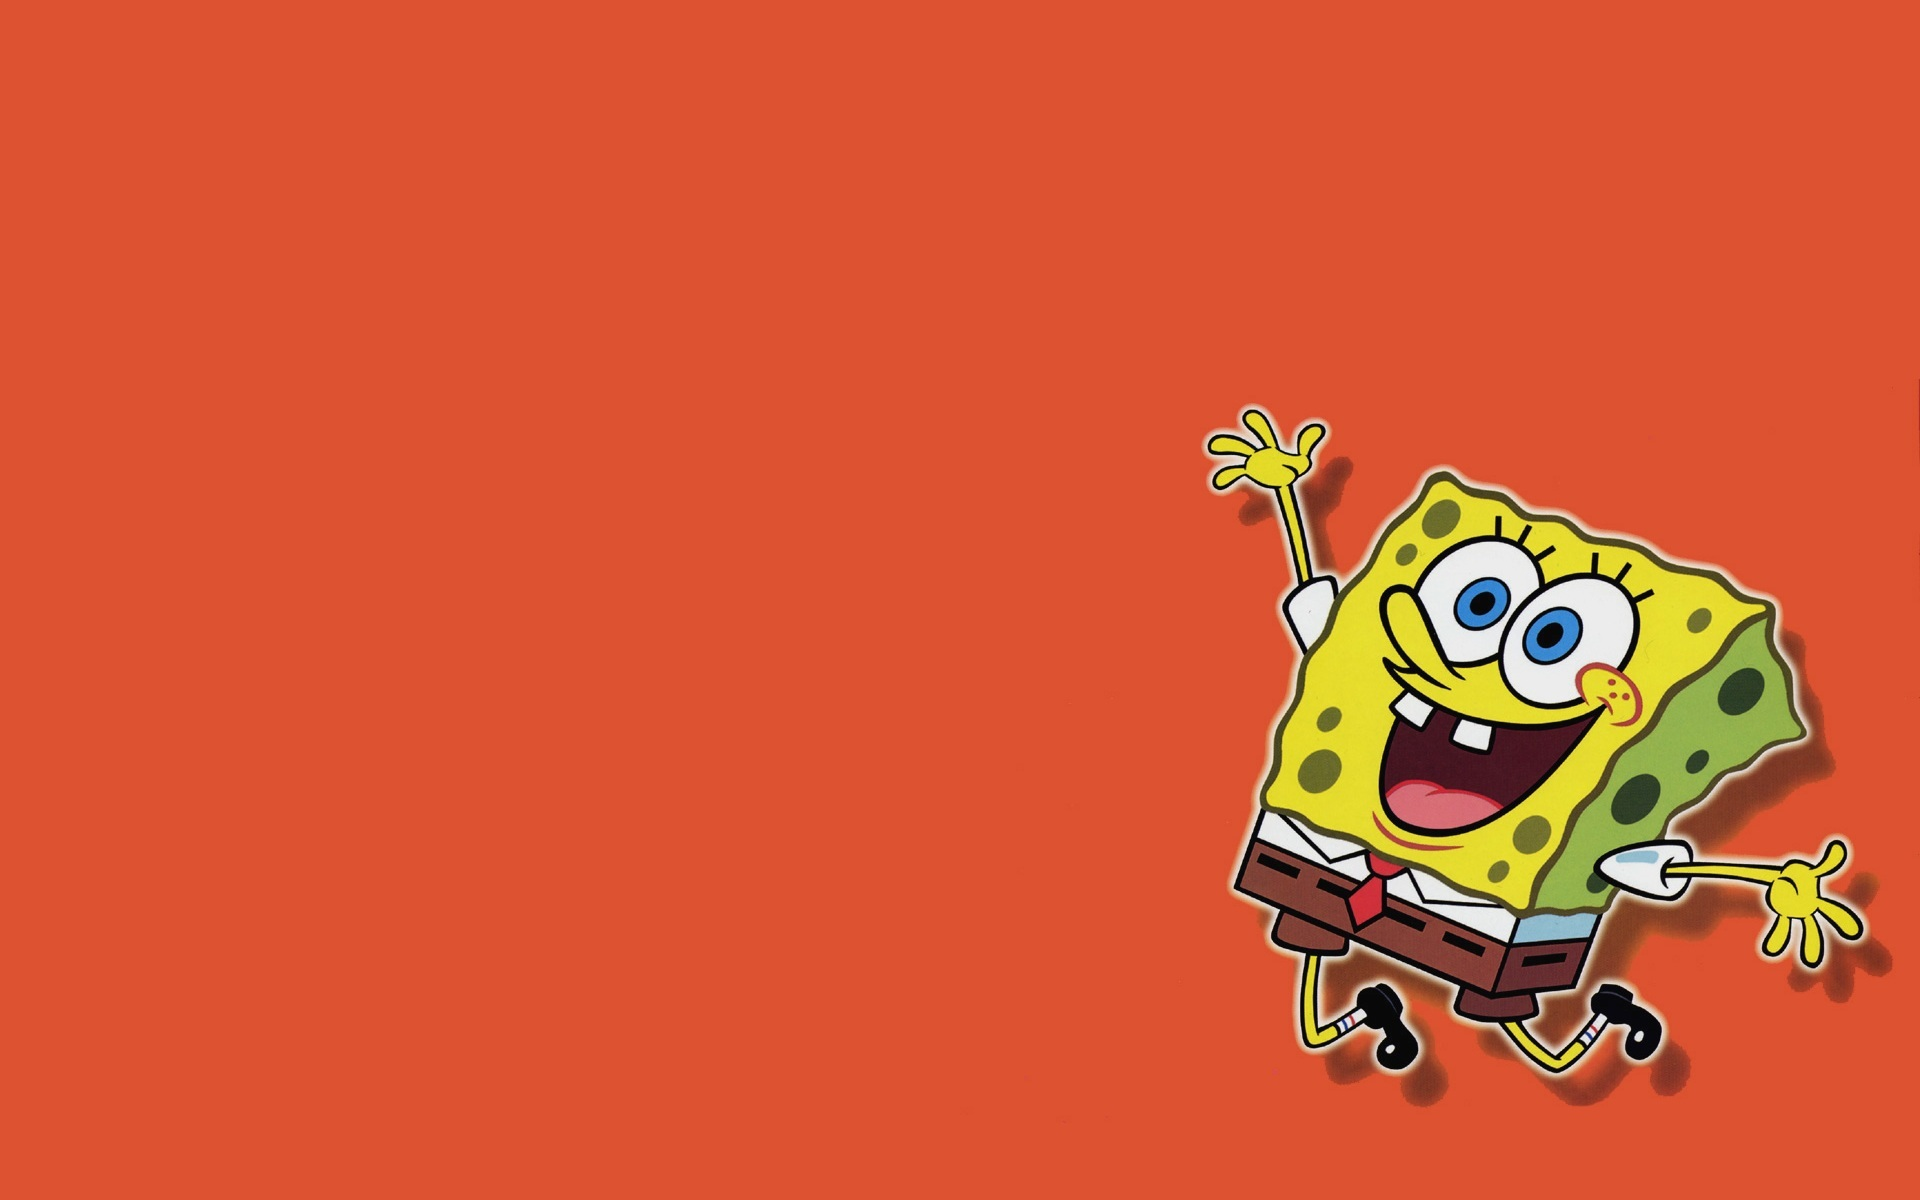 SpongeBob SquarePants wallpapers HD orange background